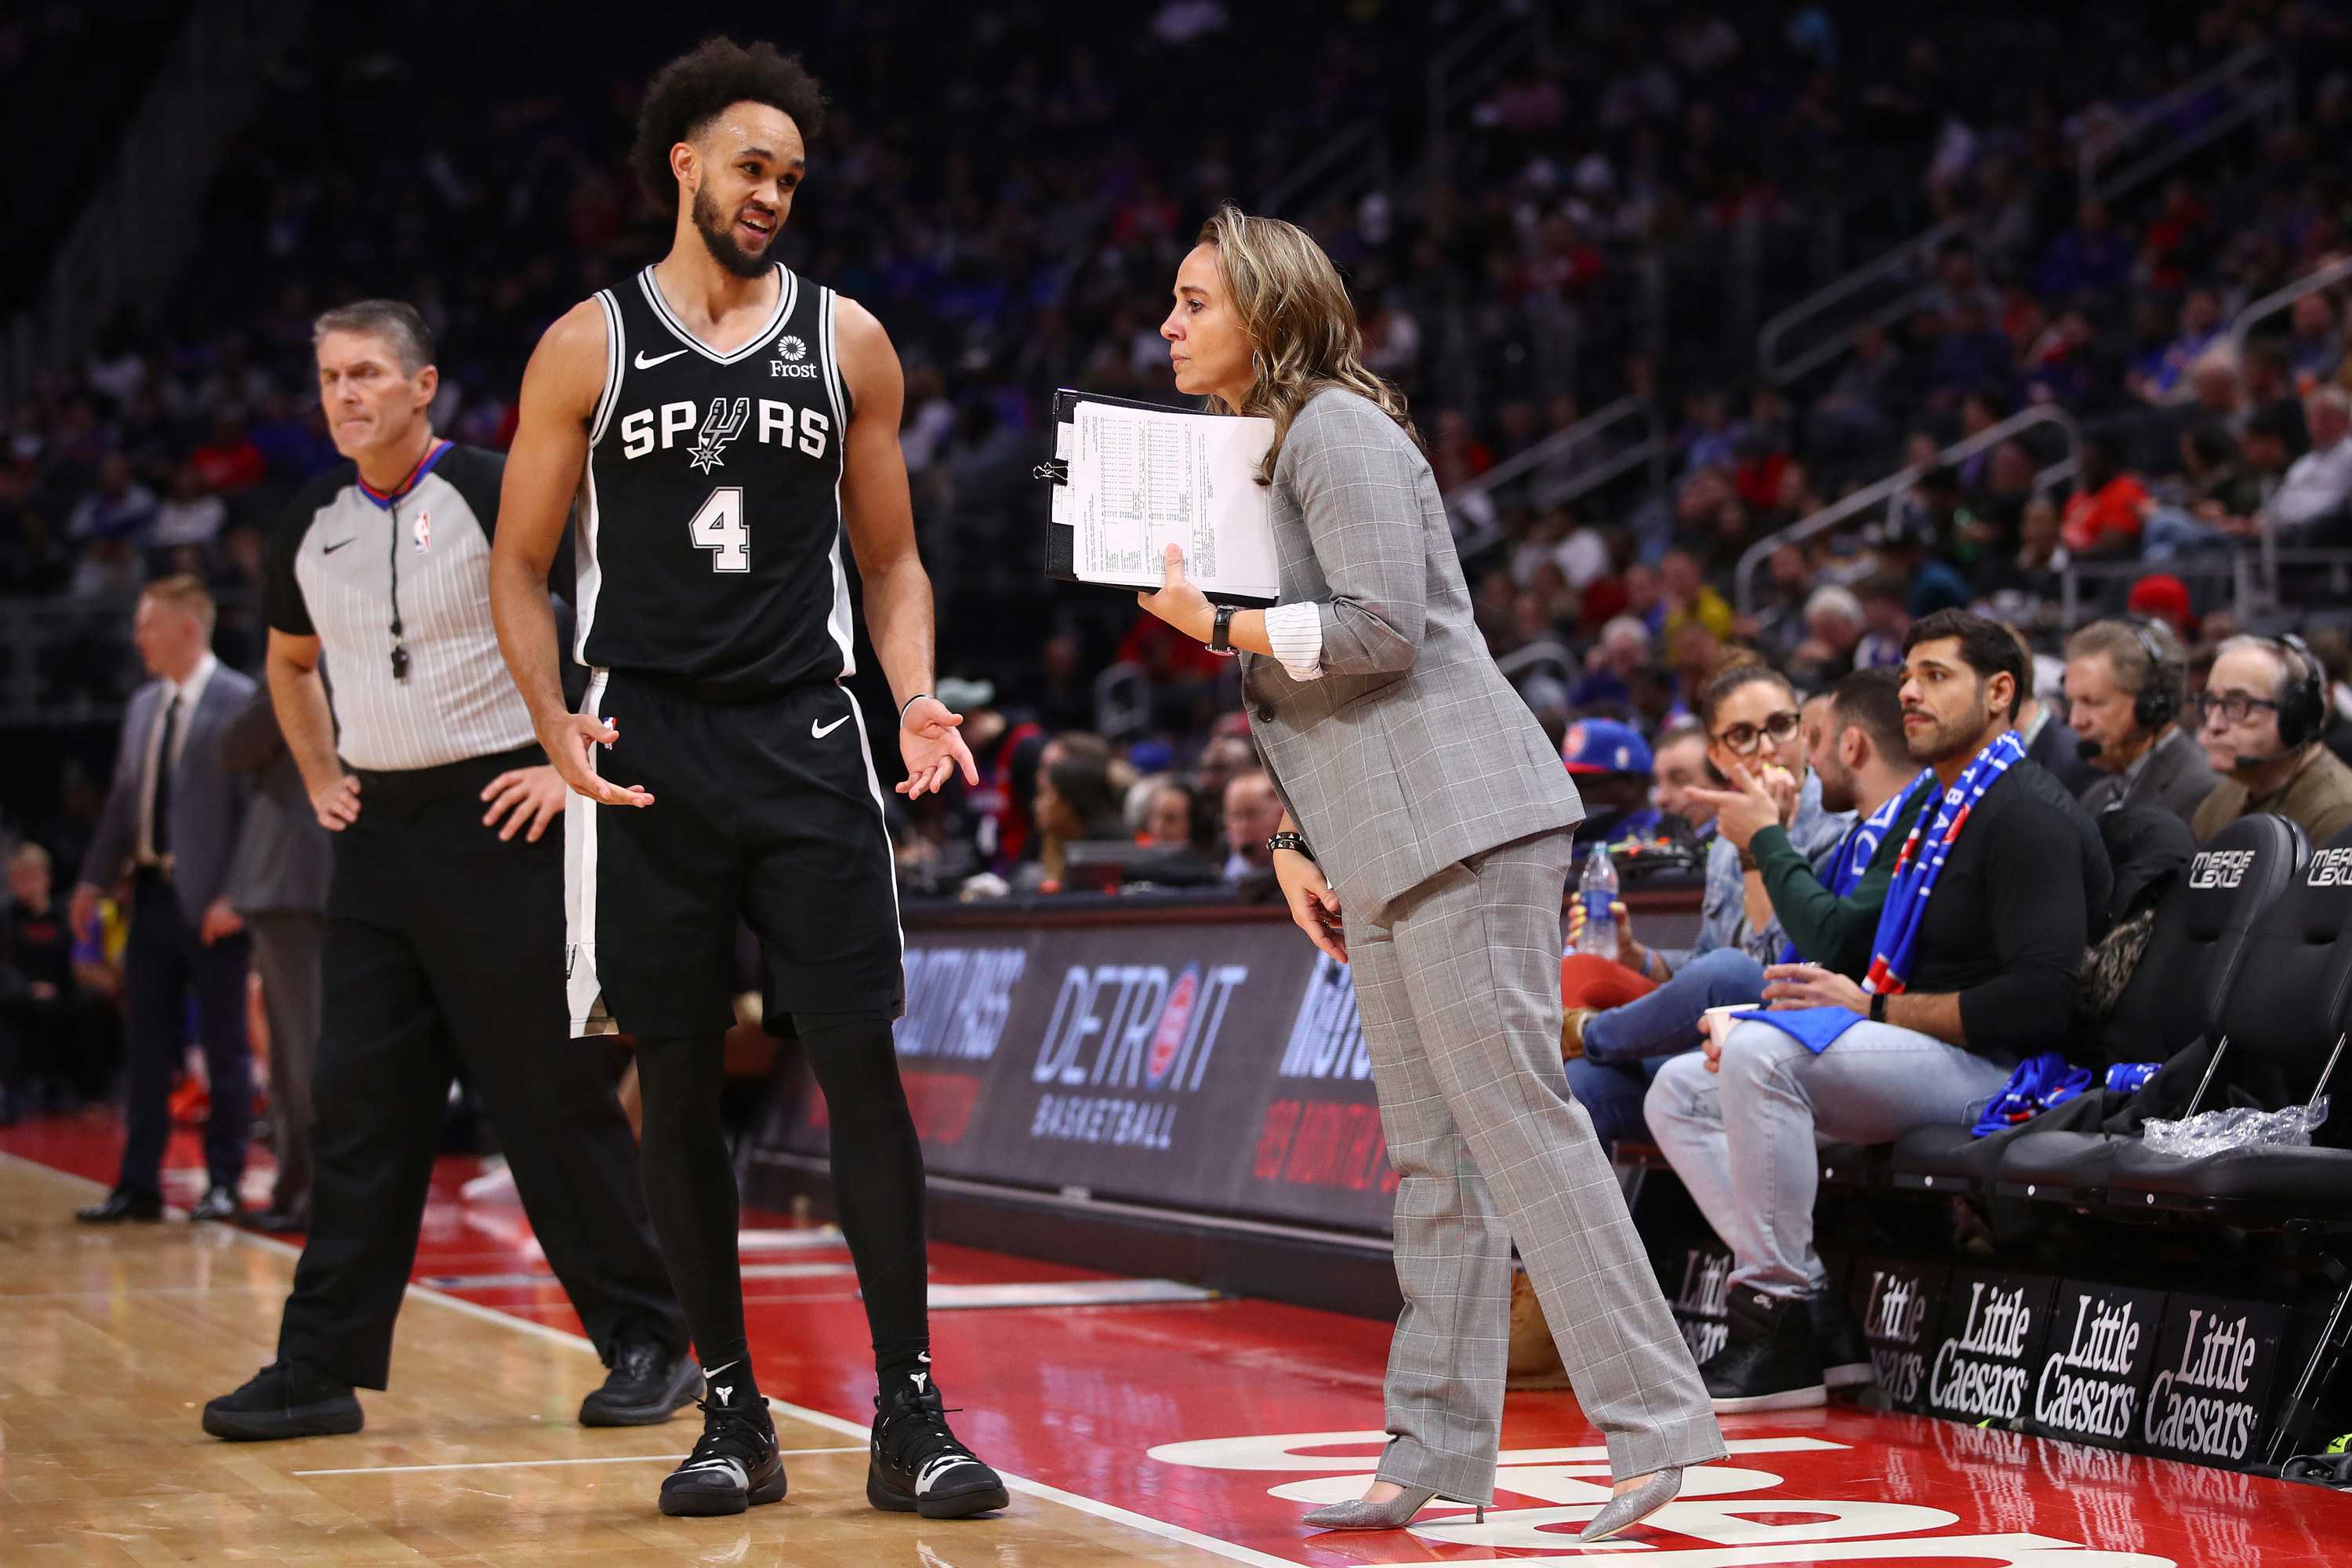 Becky Hammon with clipboard coaching